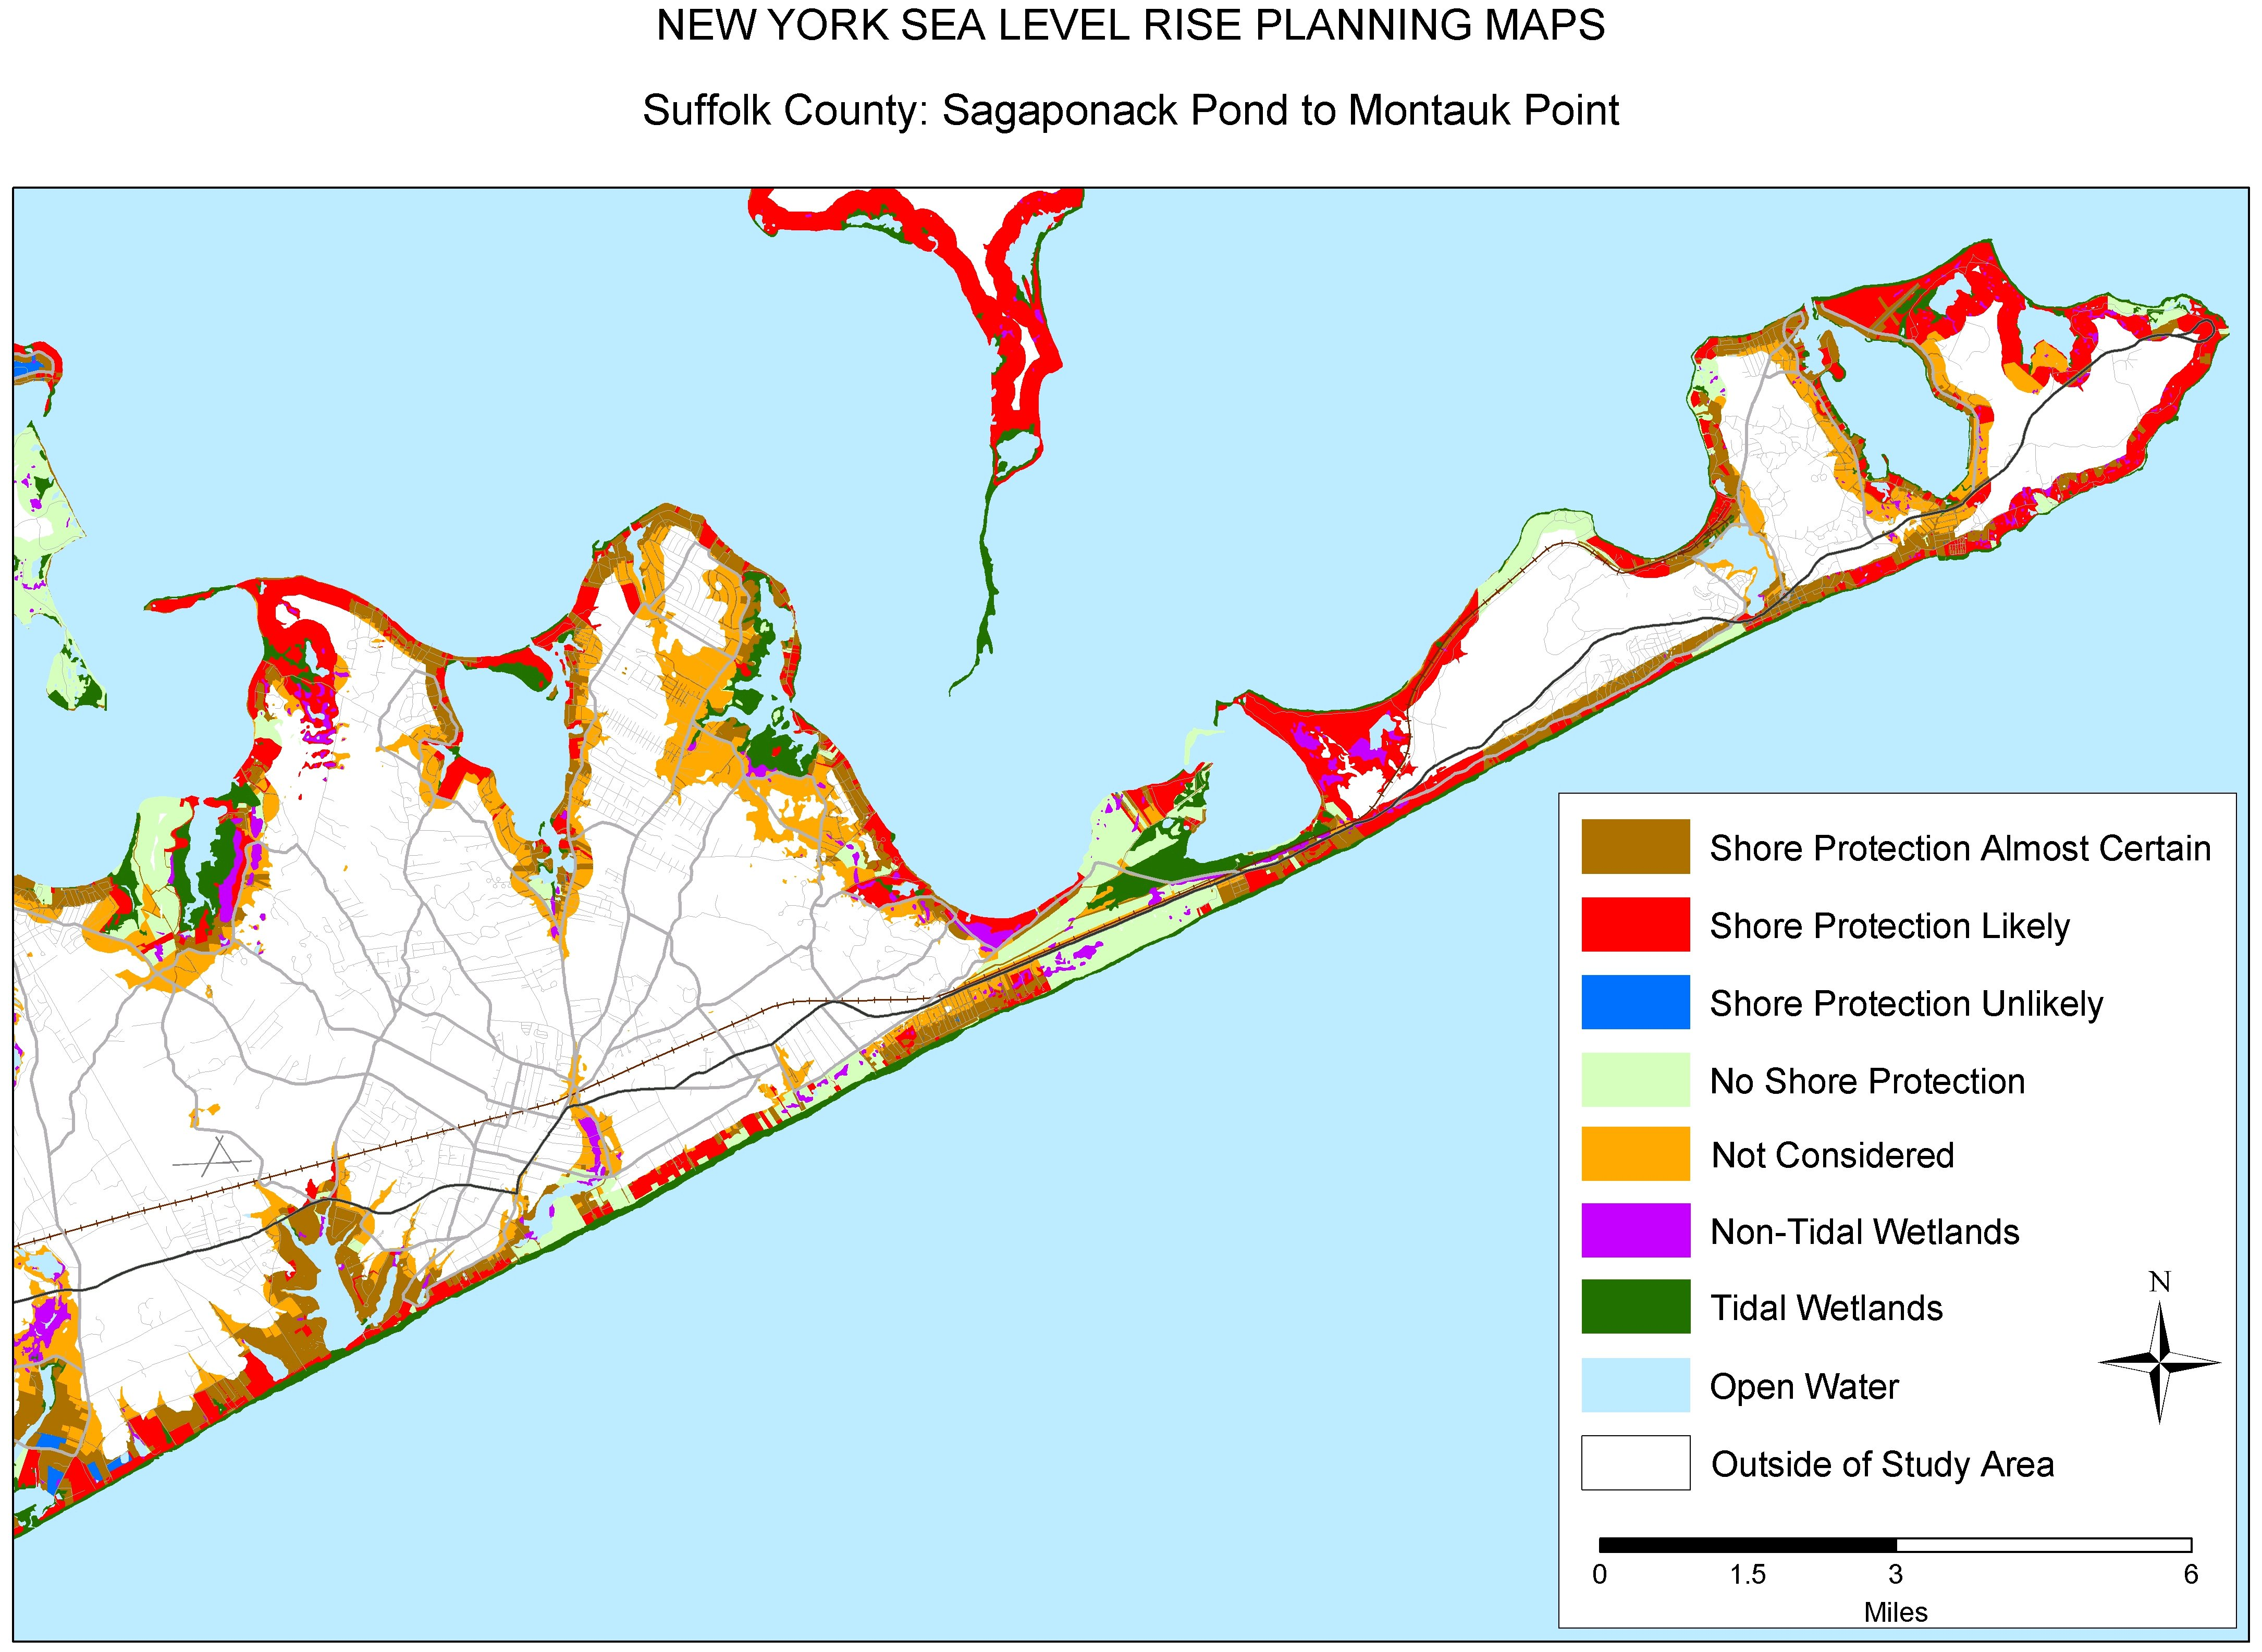 New York Map Long Island.Sea Level Rise Planning Maps Likelihood Of Shore Protection